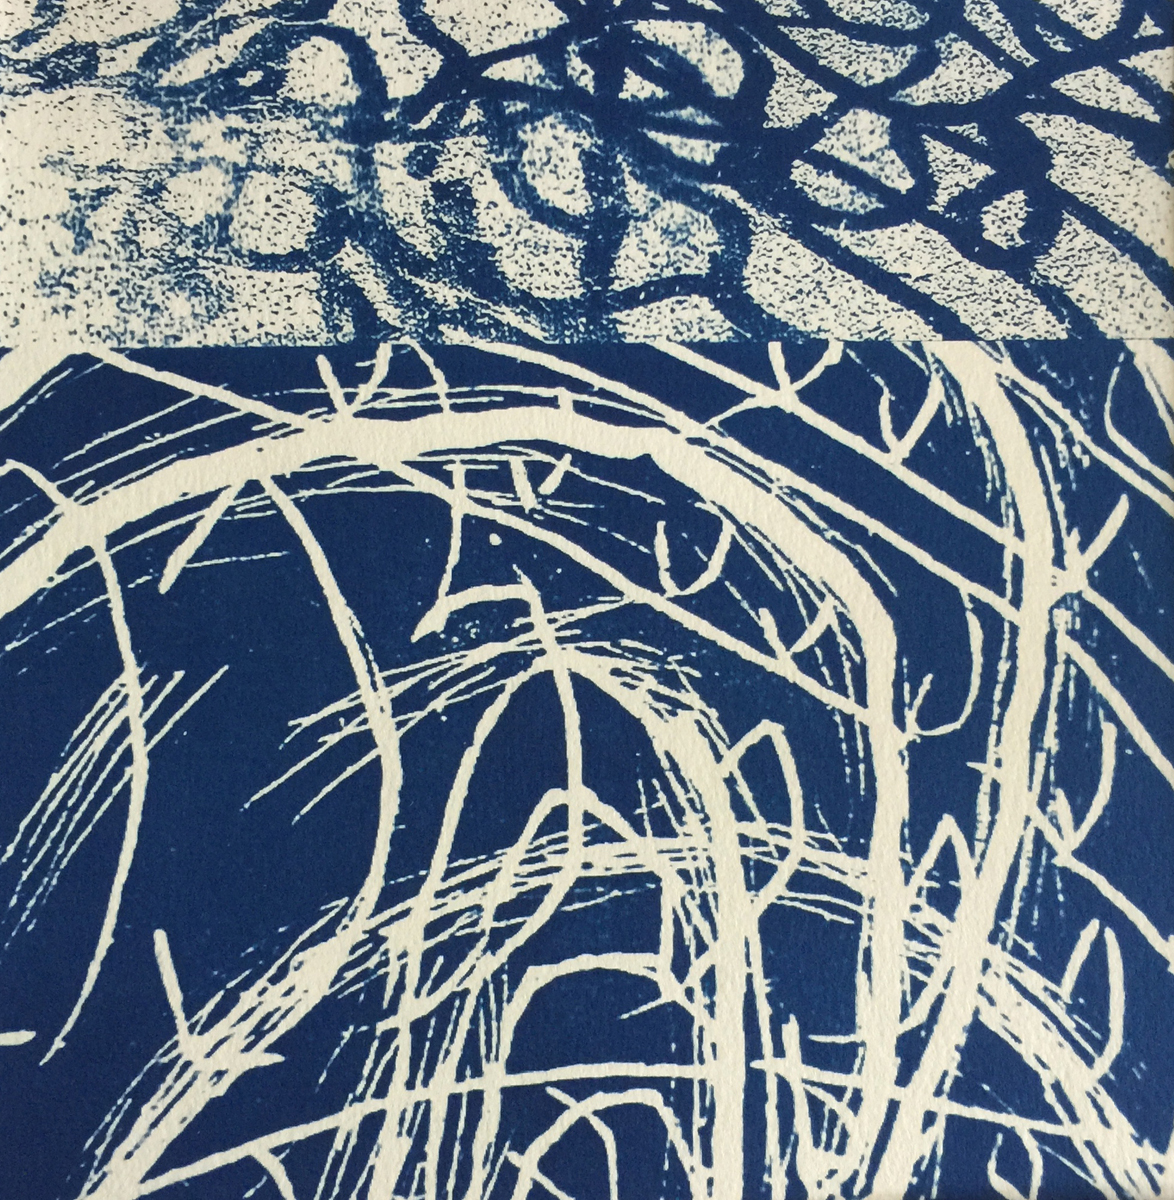 Dividing the Waters - Cyanotype - 8x8